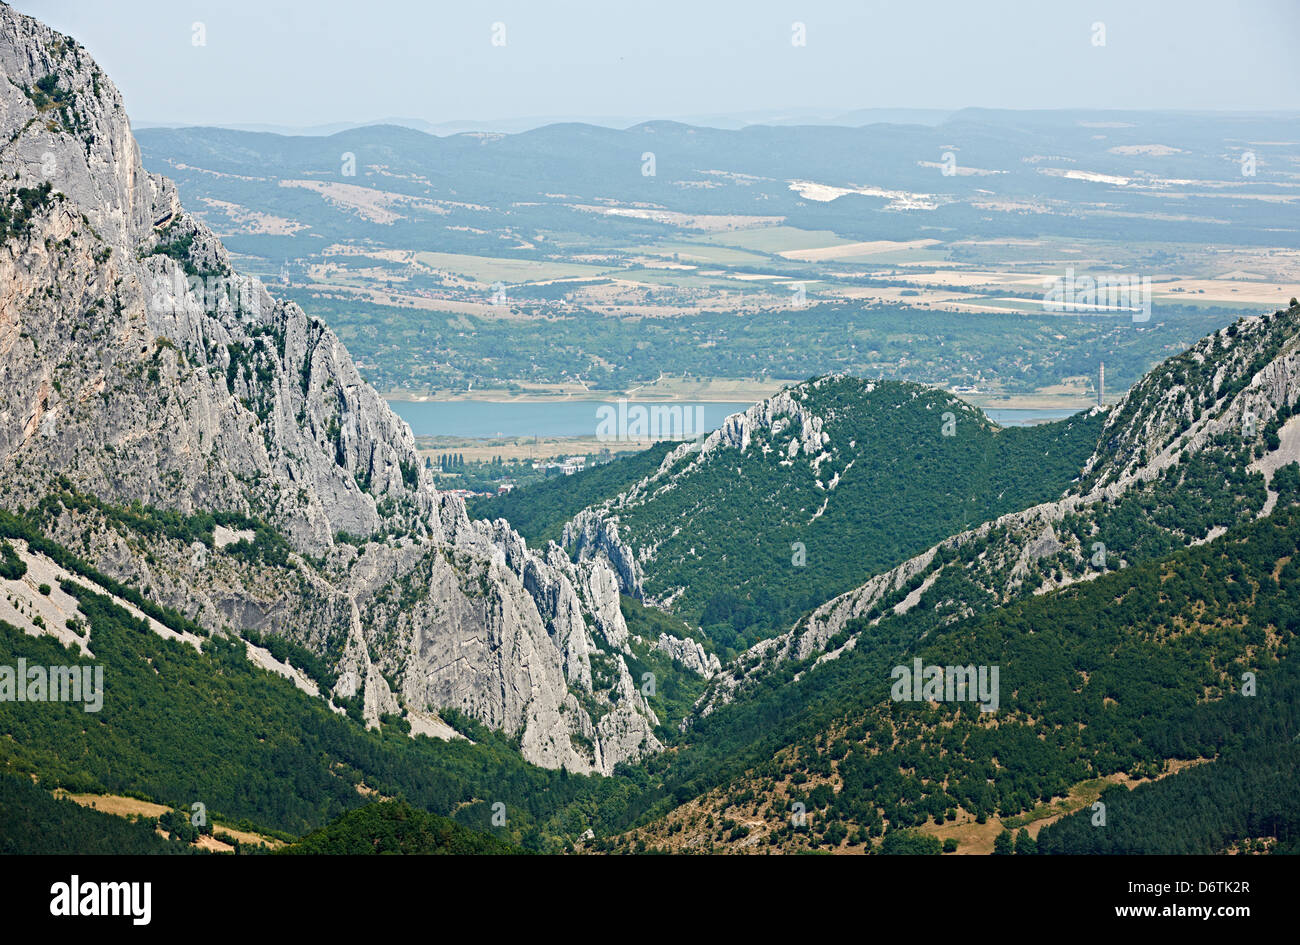 The Vratsata rock phenomenon near the town of Vratsa, North Bulgaria, summer landscape - Stock Image